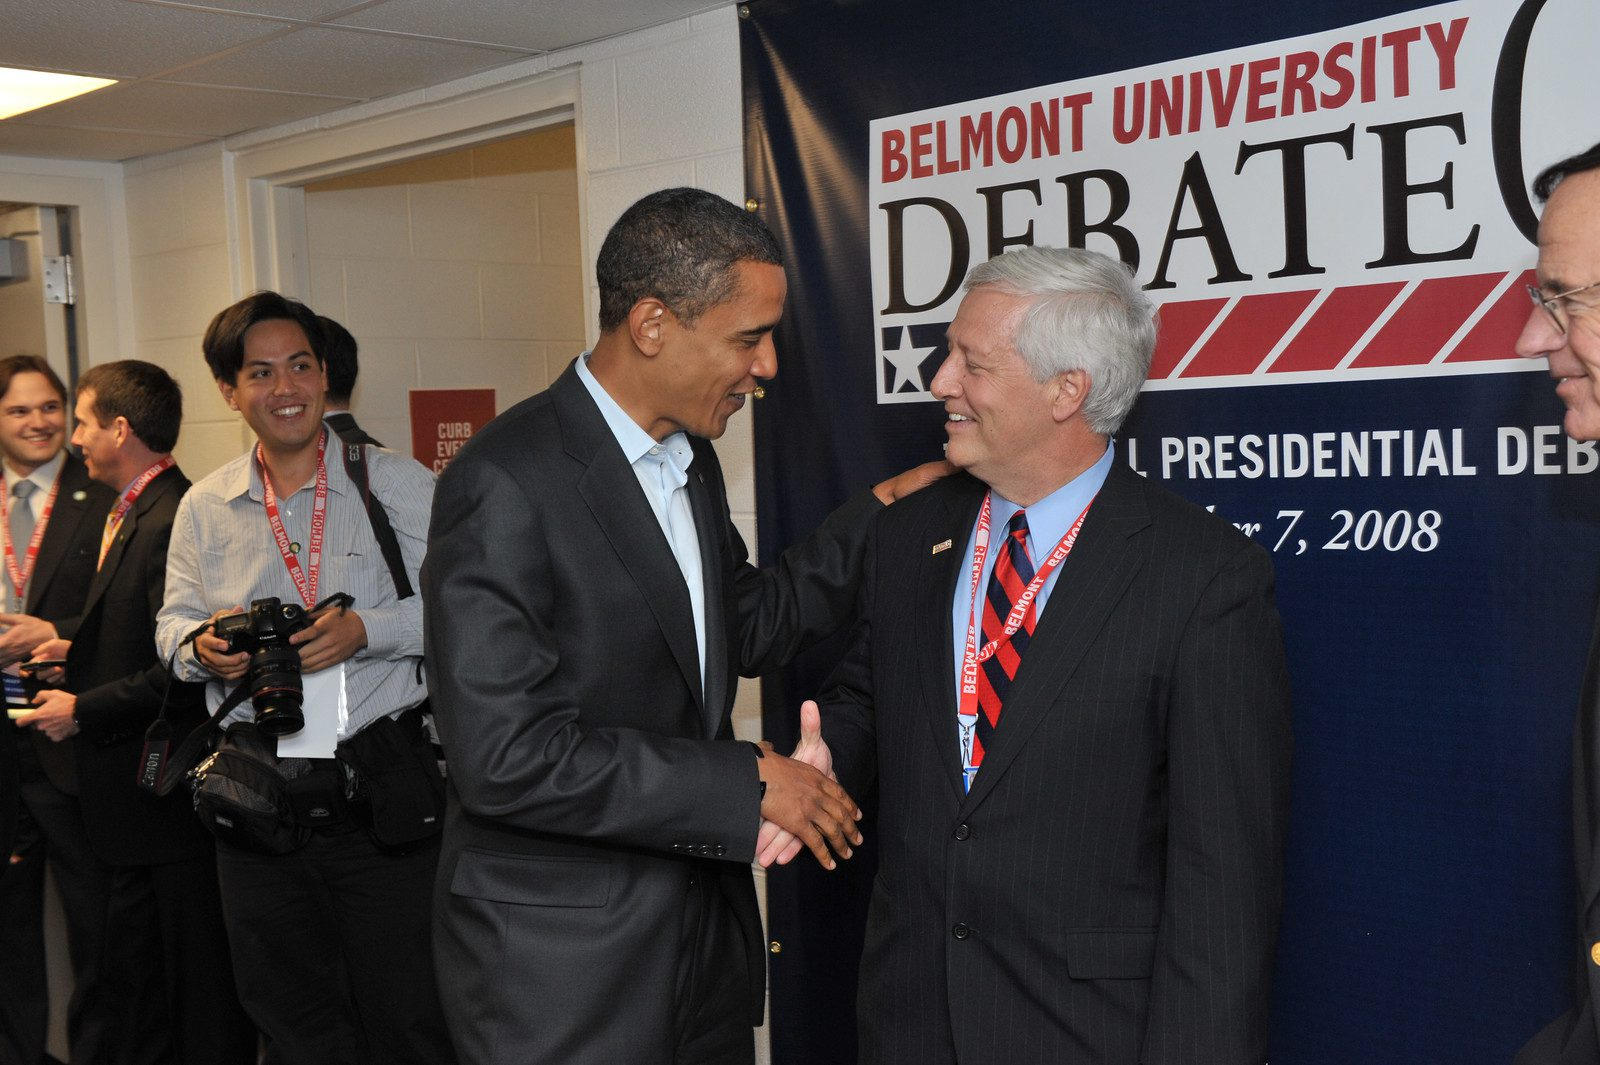 Dr. Fisher with then presidential candidate Barack Obama